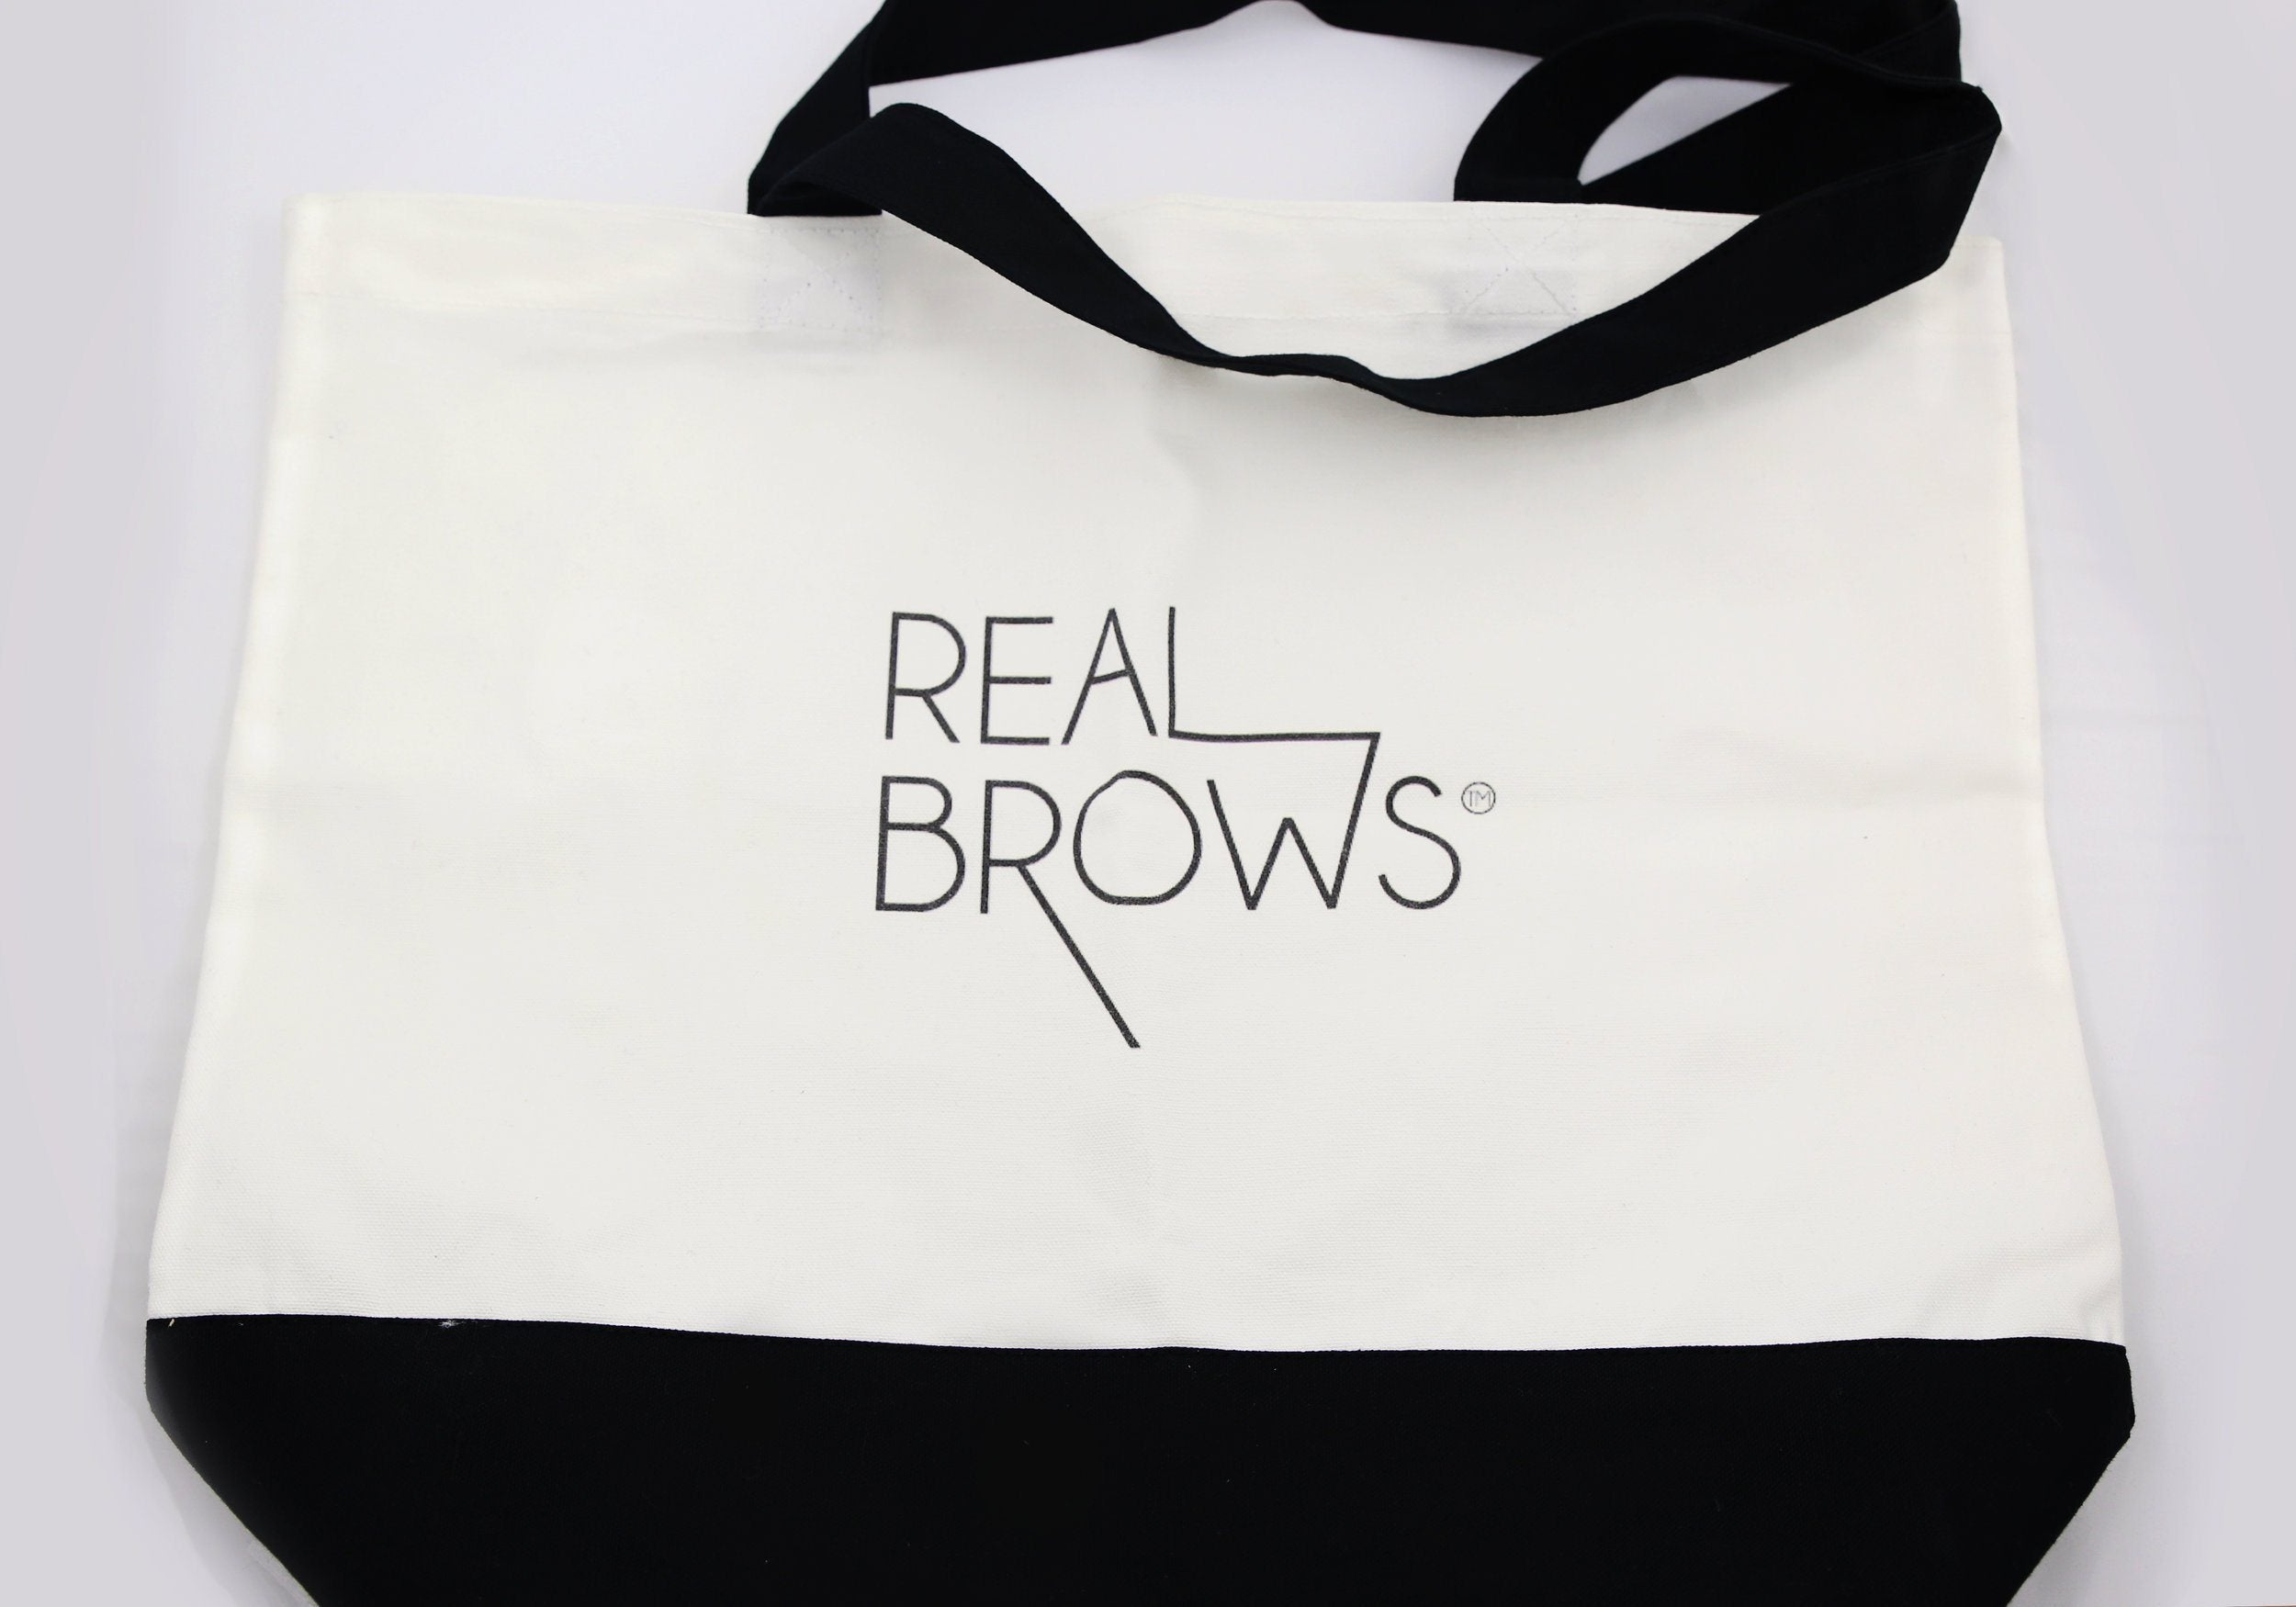 Real Brows® Tote Bag [product_price] Faux Features